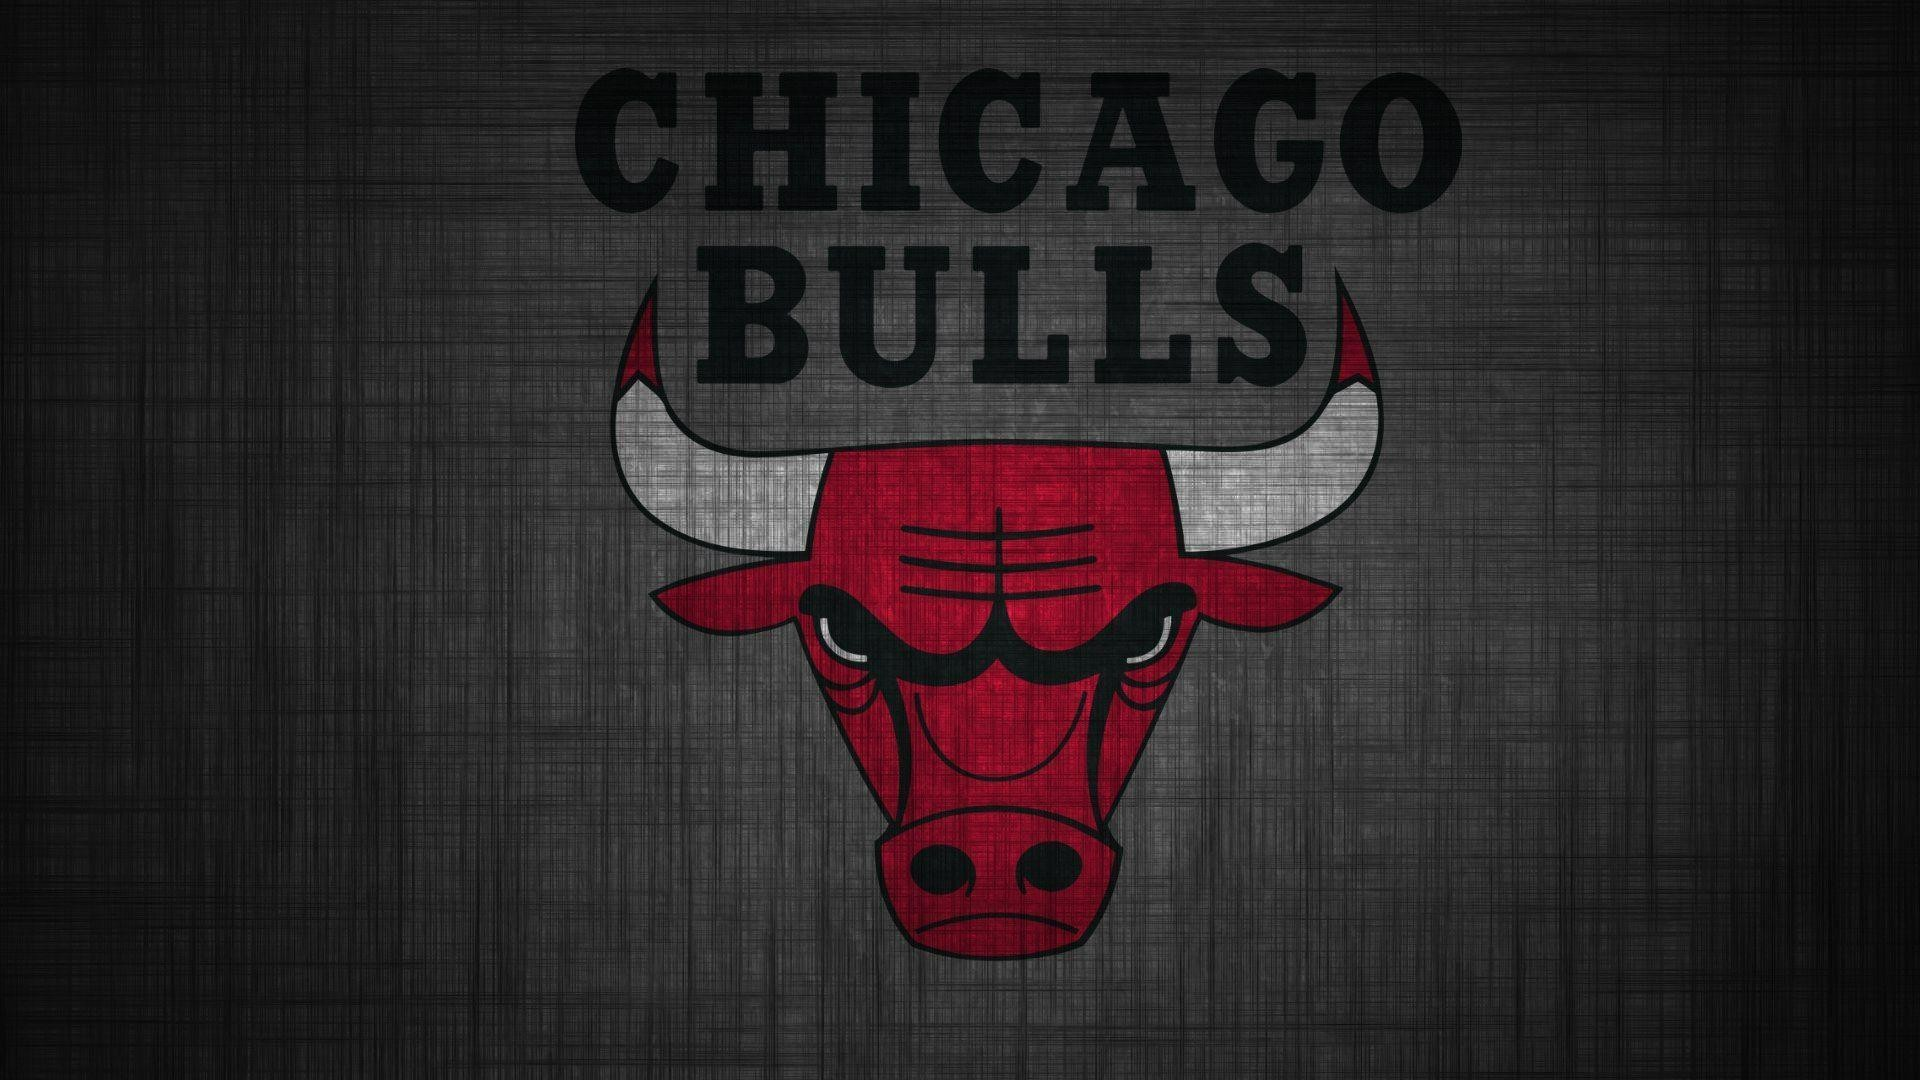 1920x1080 Chicago Bulls Desktop Wallpapers - Wallpaper Zone